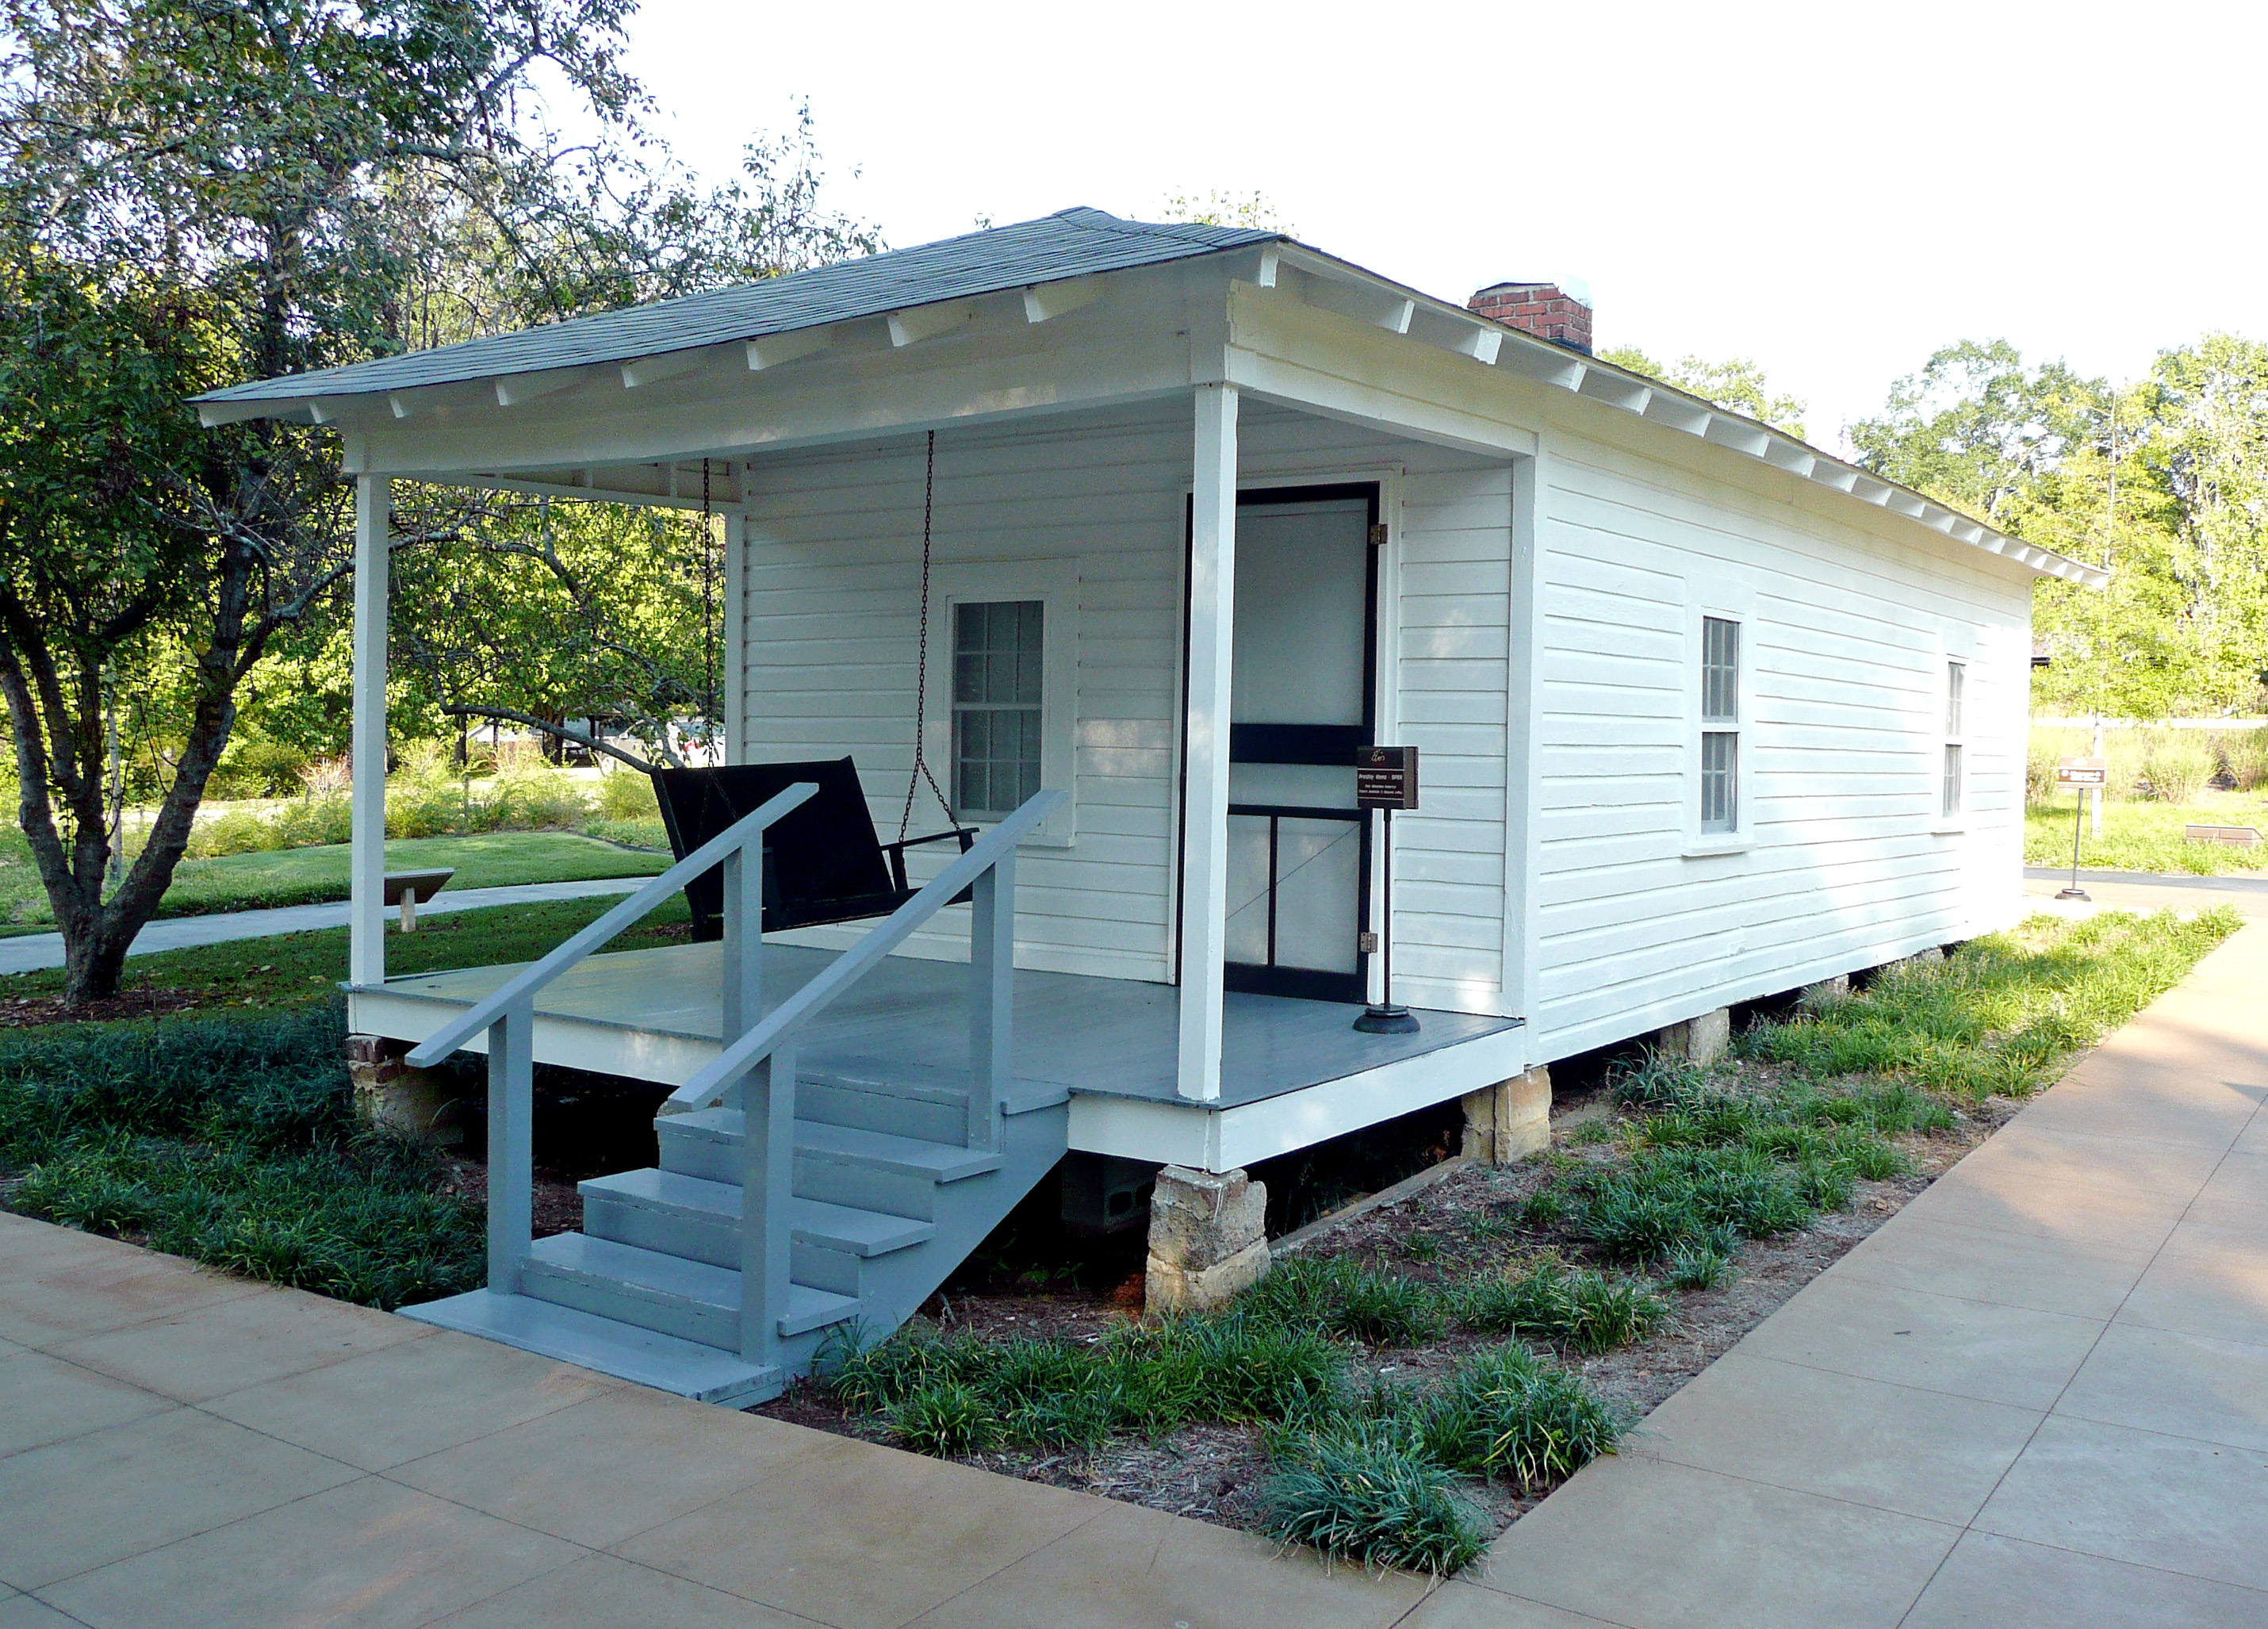 File Elvis 39 Birthplace Tupelo Ms Wikimedia Commons